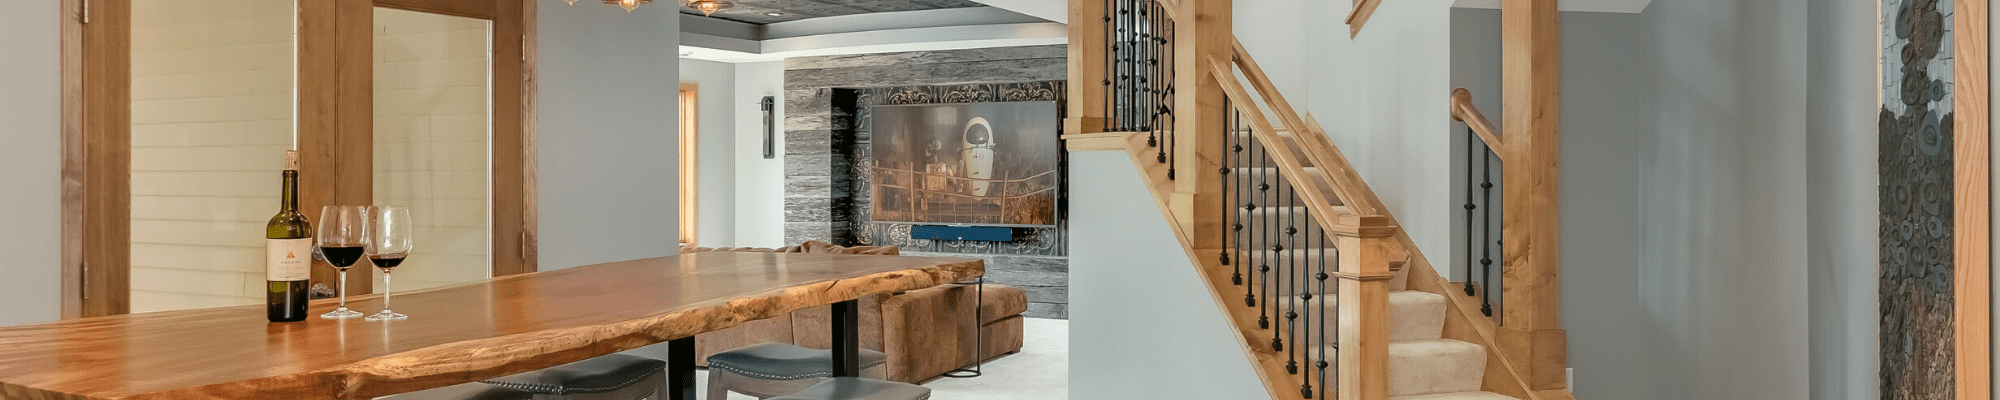 Designing in Place with FBC: Budget Tips for Your Remodel